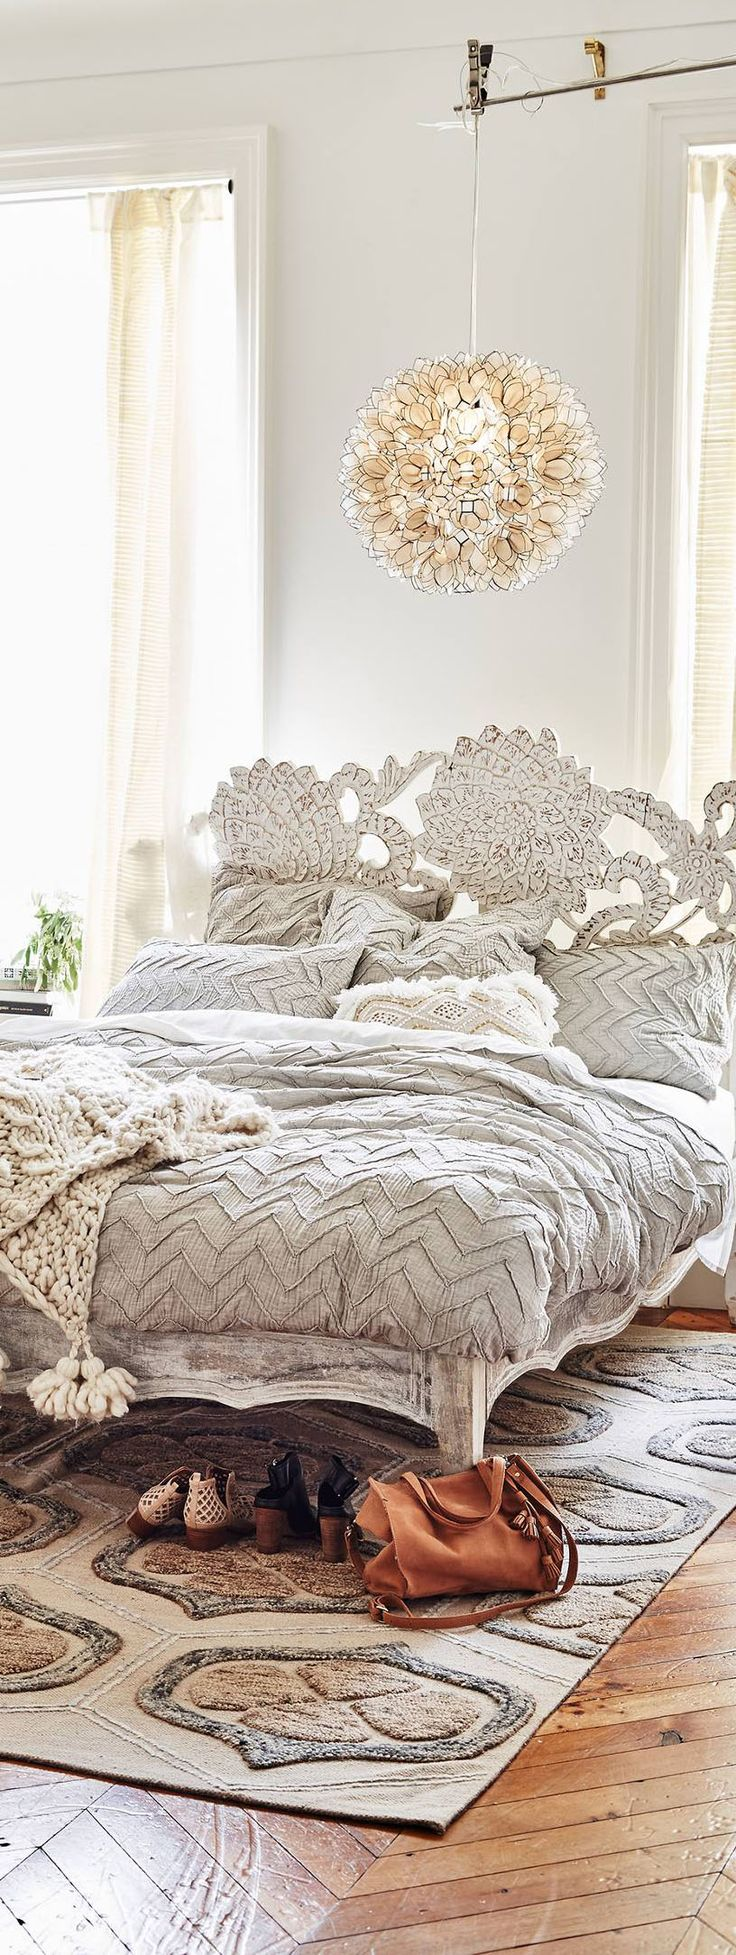 Bedspread designs texture - 17 Best Ideas About Textured Bedding On Pinterest Cozy Bedroom Decor White Comforter Bedroom And White Bedding Decor